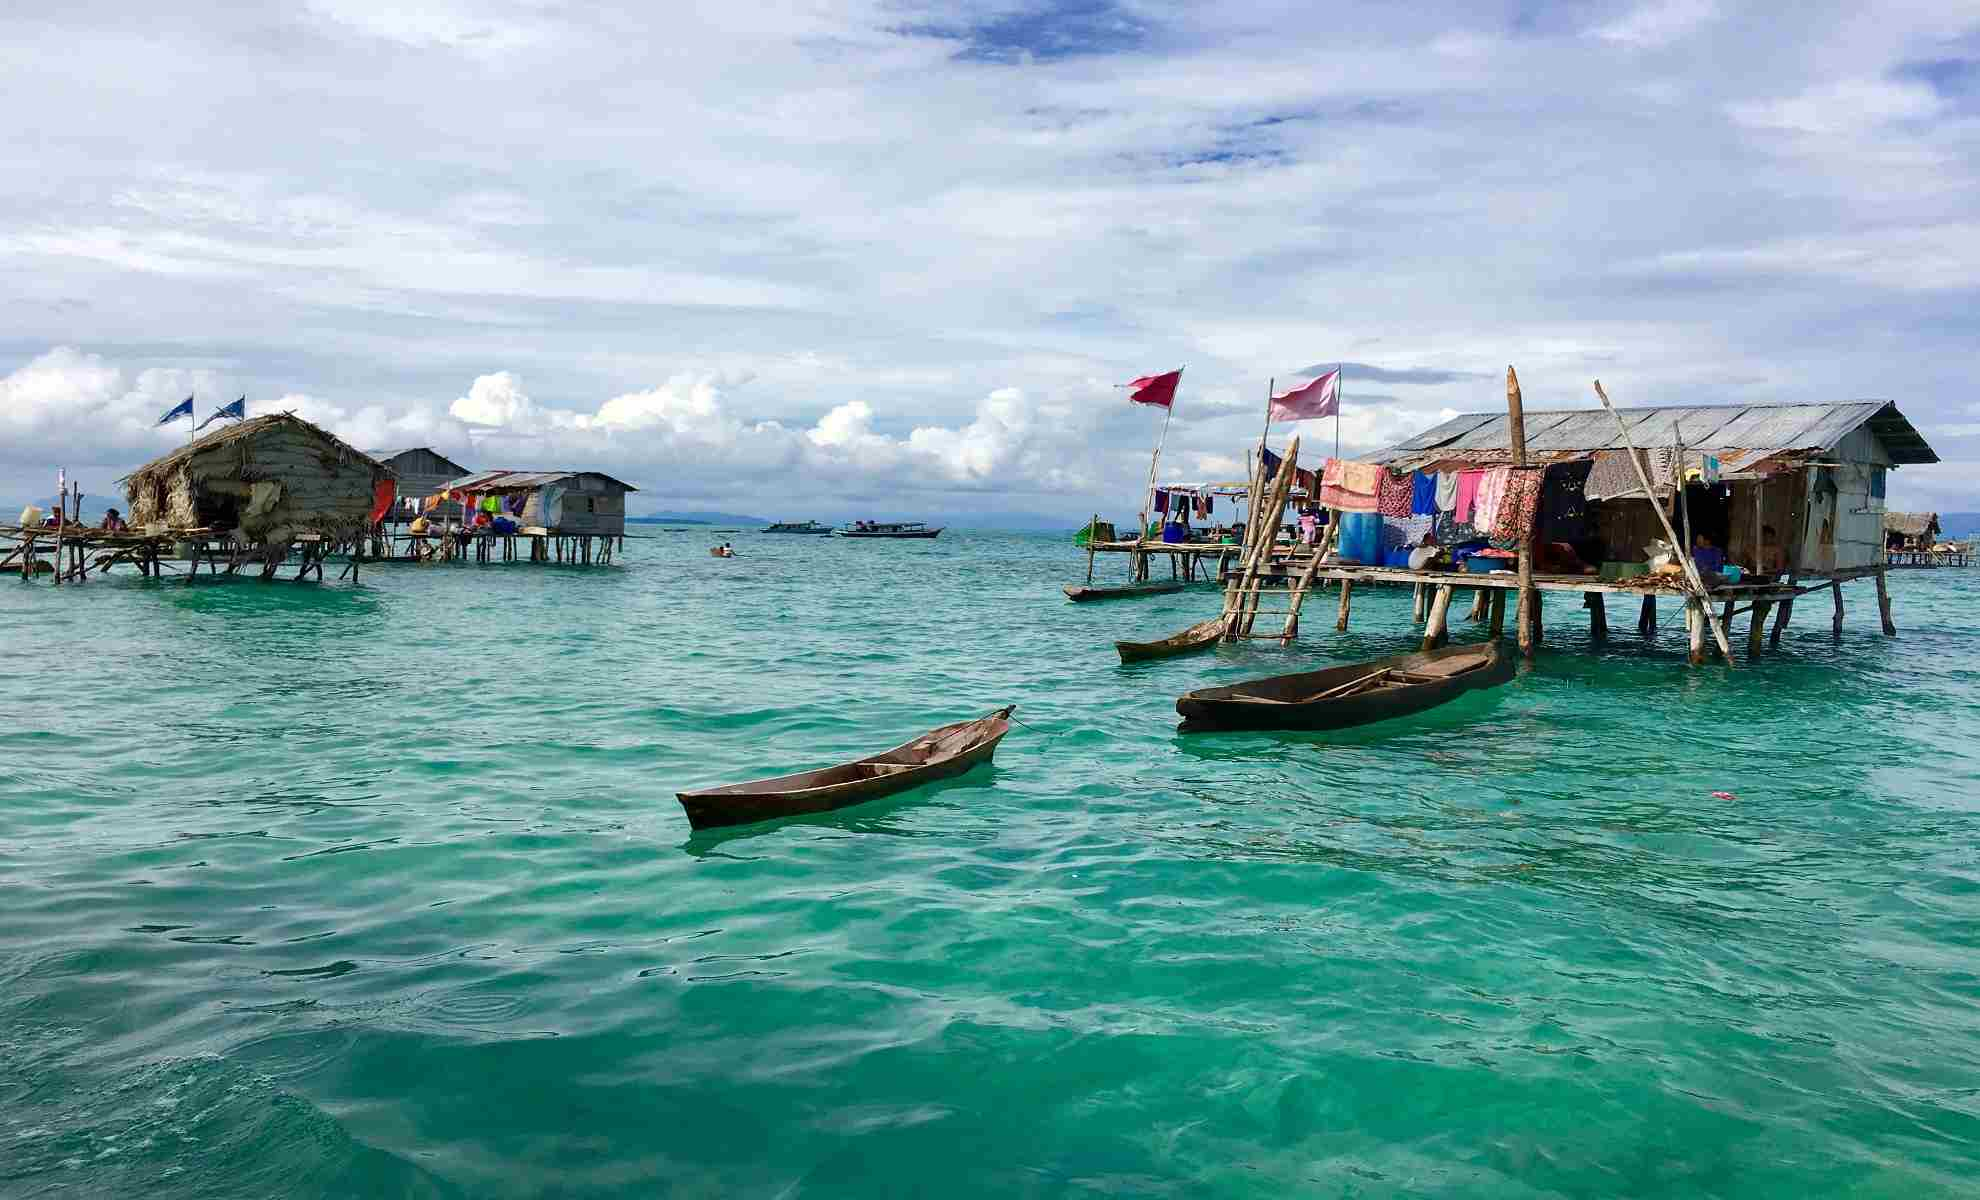 Borneo fishing village